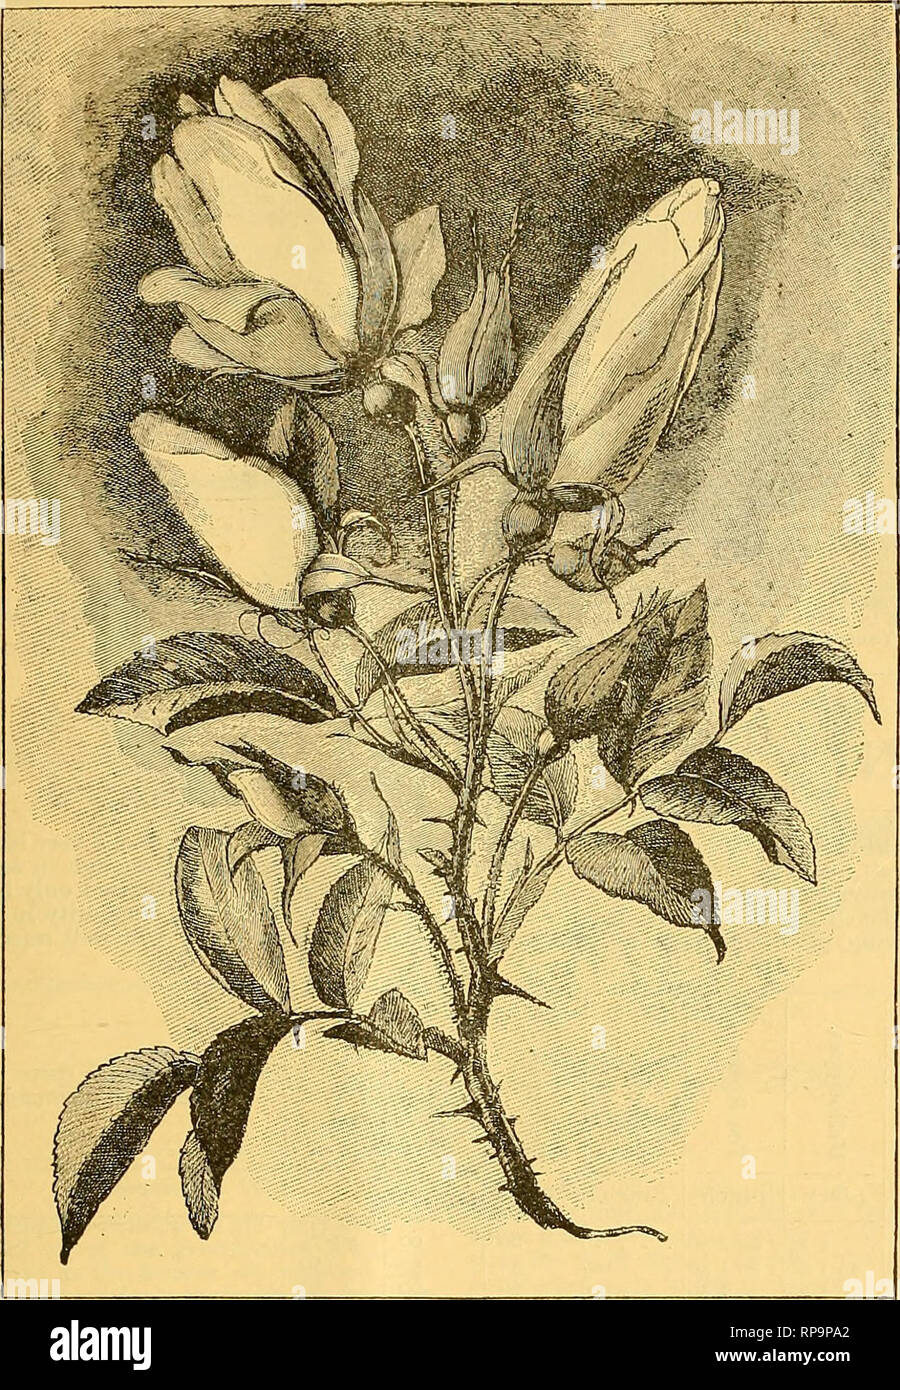 . The American florist : a weekly journal for the trade. Floriculture; Florists. i888. The American Florist. 519. HXBRD Host UKOKWt GtORGtS QBU^W. ing for the first time. It has still eleven strong well developed buds to open, and is entirely free from mildew, a fact that is quite refreshing to witness in this variety. I think it has at last found its proper place, viz : Among our best H. P. roses in the garden. Thos. Franks. Champaign, 111. Some New Roses. Sappho, the new tea rose, so well ex- hibited by Messrs. William Paul & Son at the recent meetings of the Royal Hort. society, is a v - Stock Image